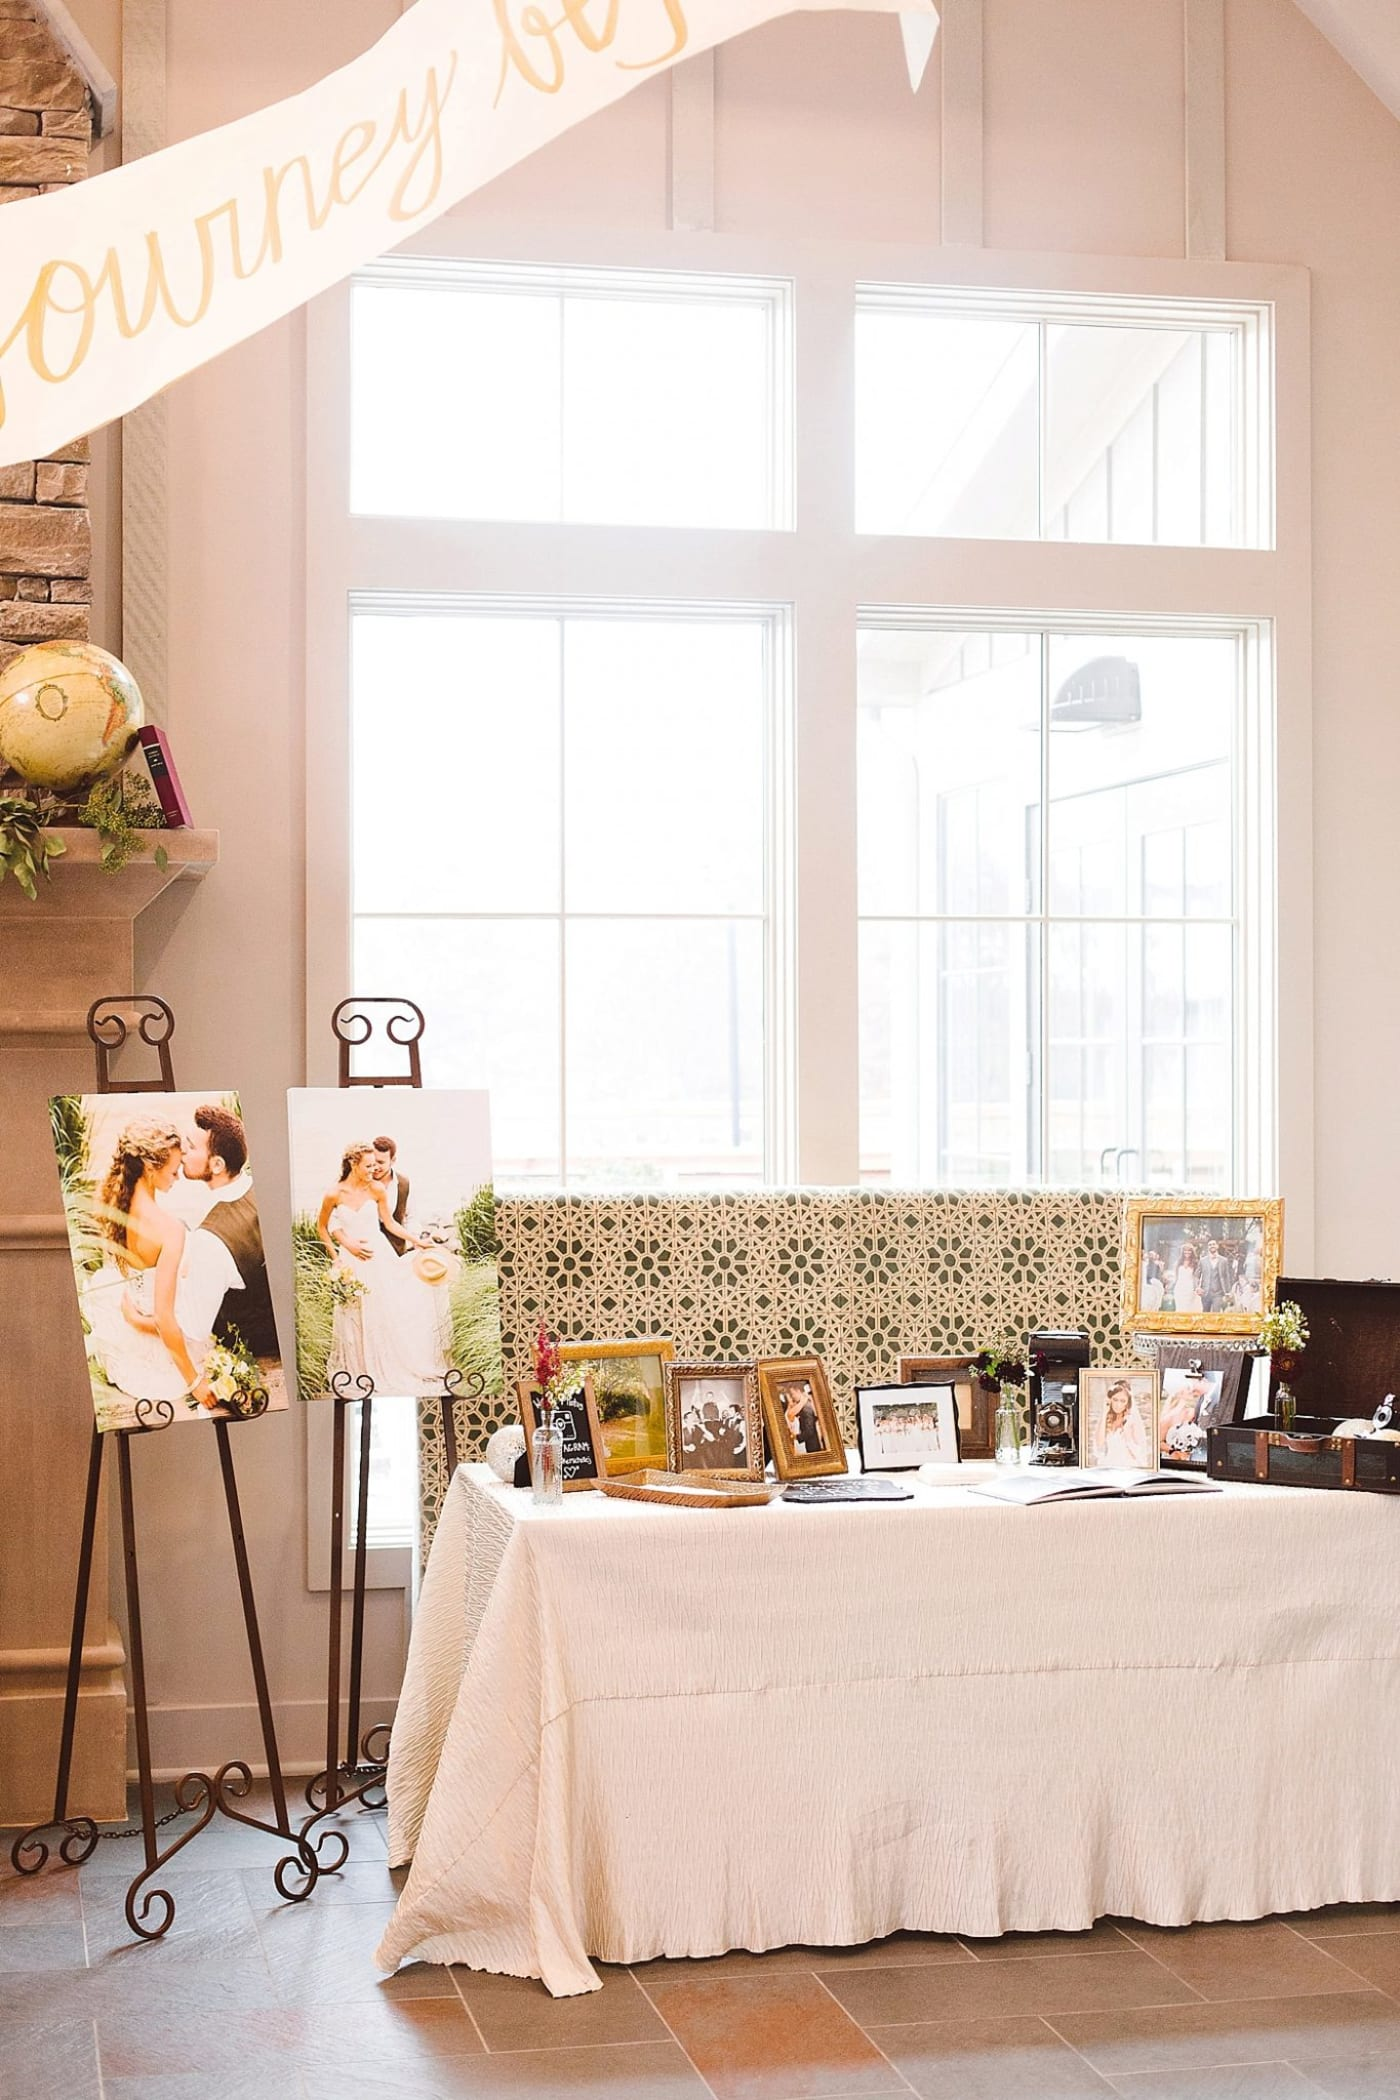 7 Tips for Rocking a Bridal Show | via the Rising Tide Society